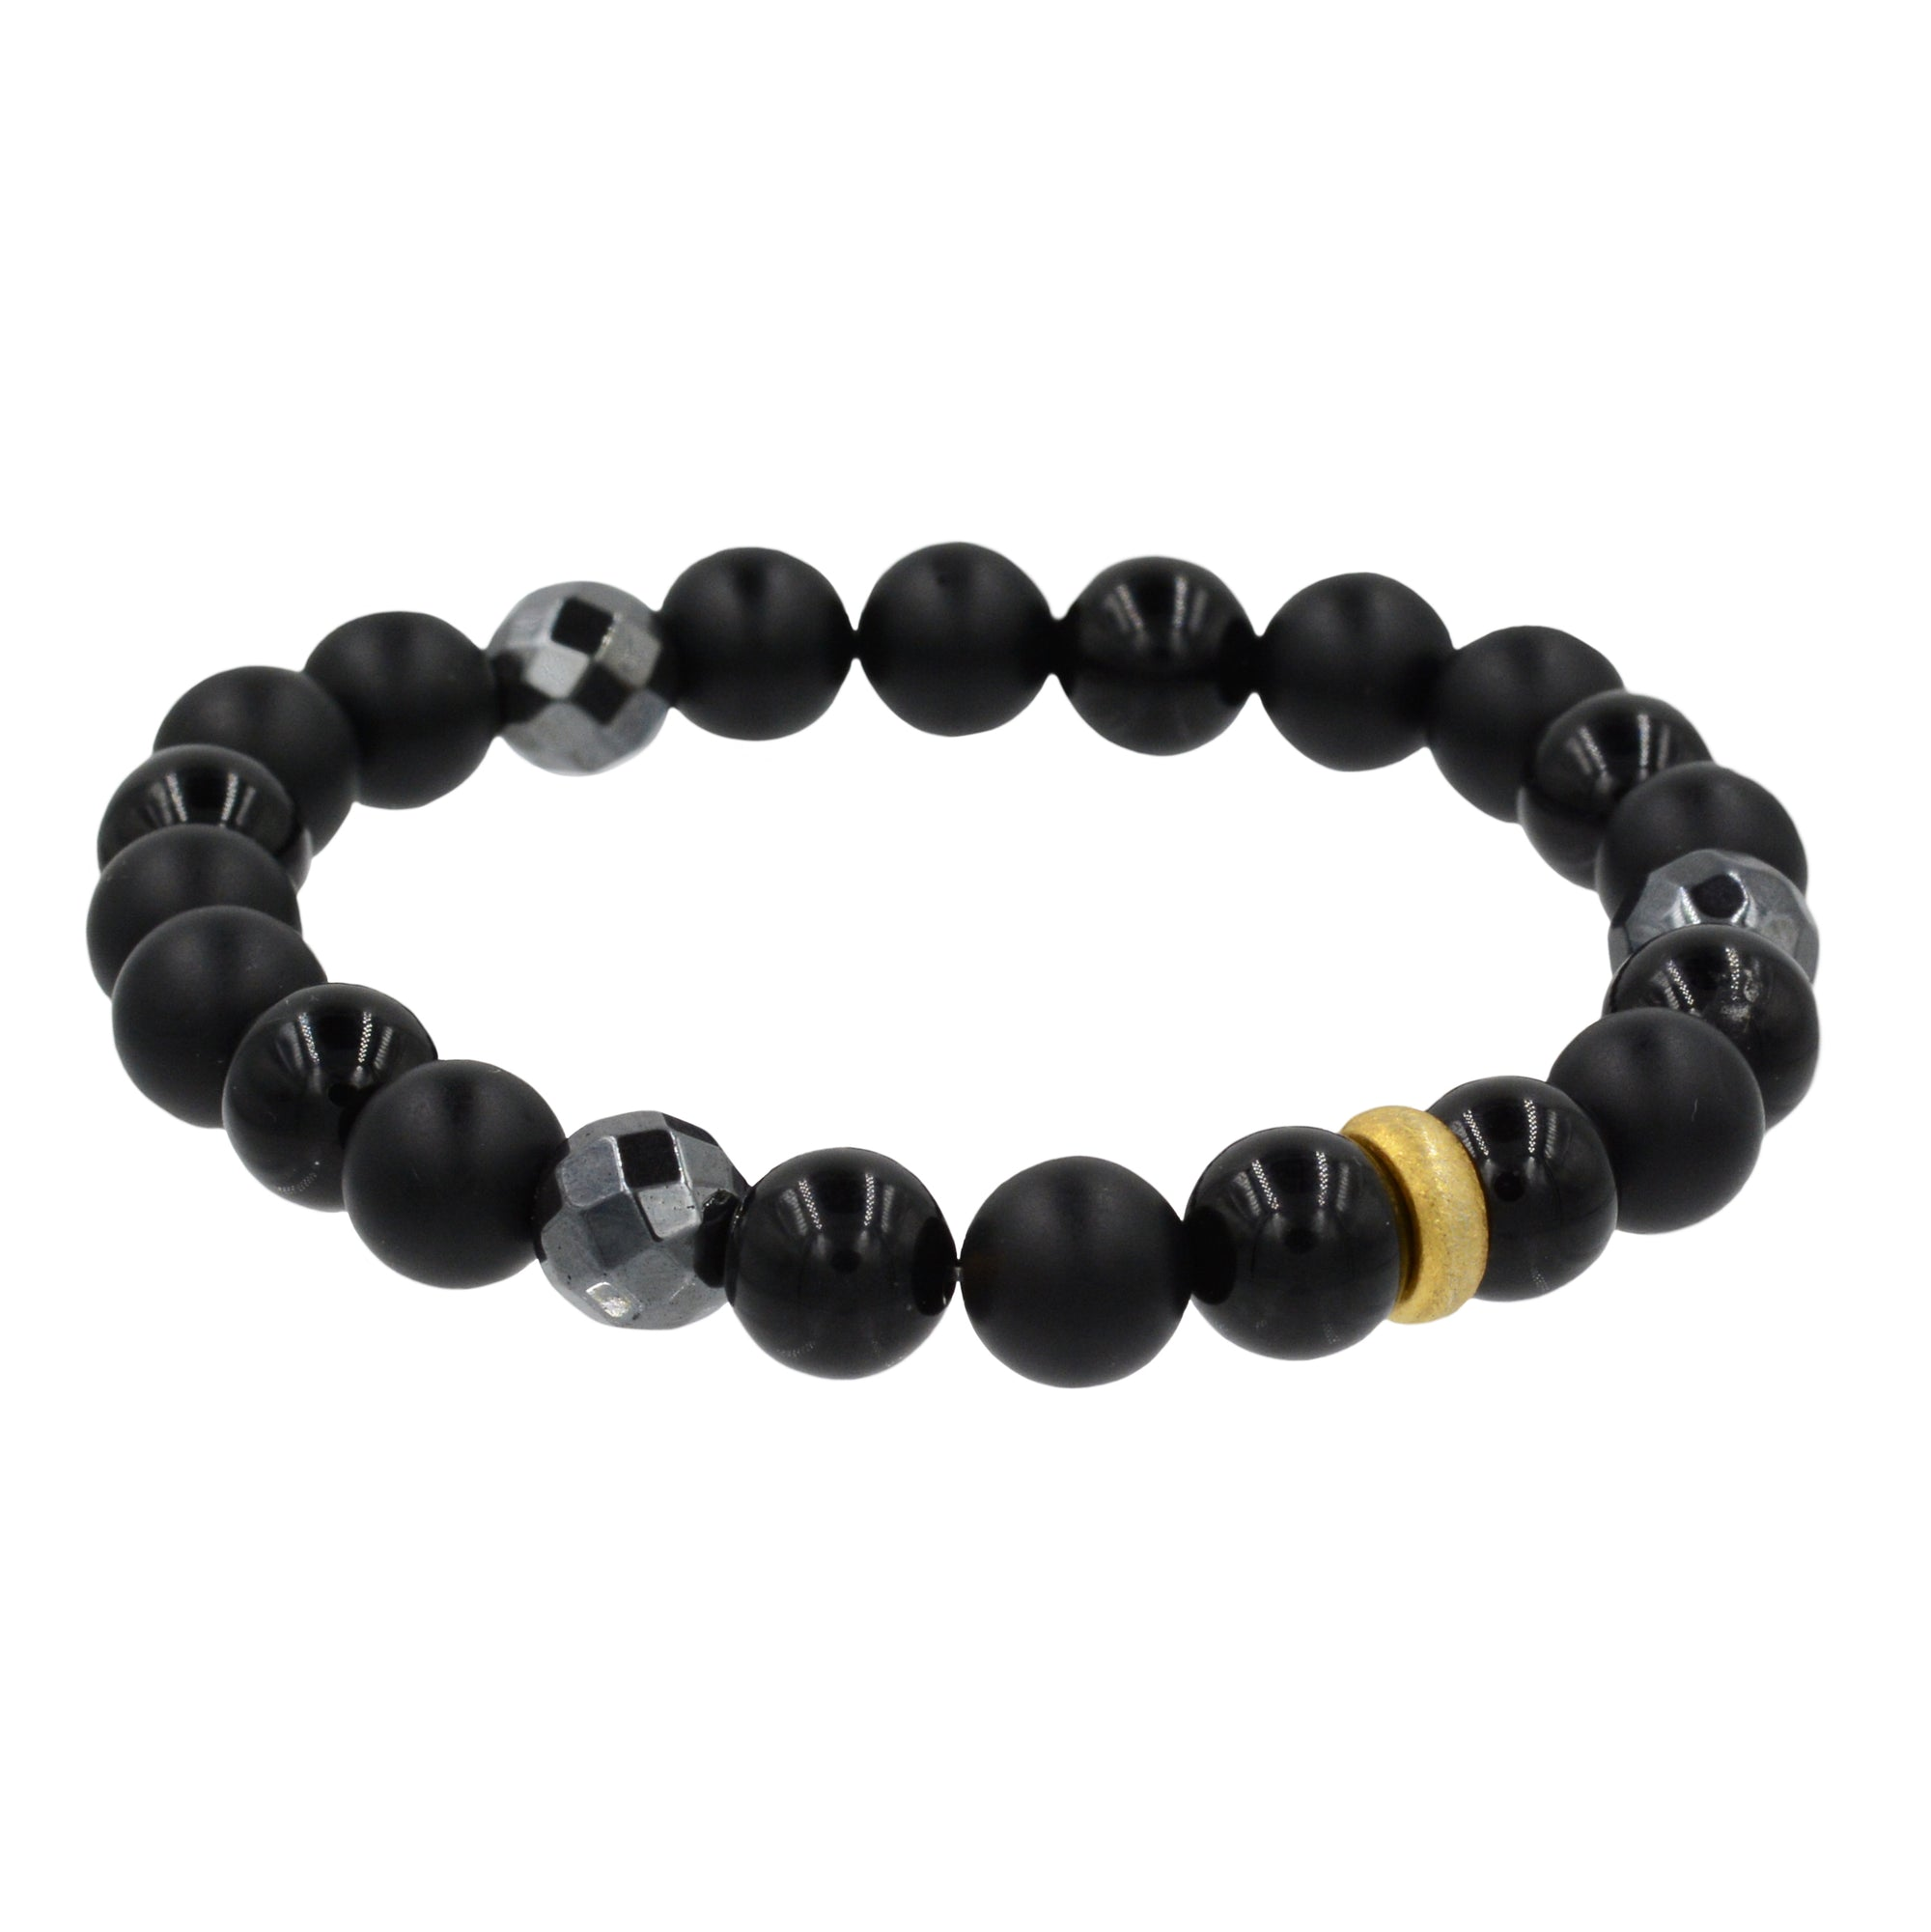 Black Onyx Bracelet with Gold Bead Accents